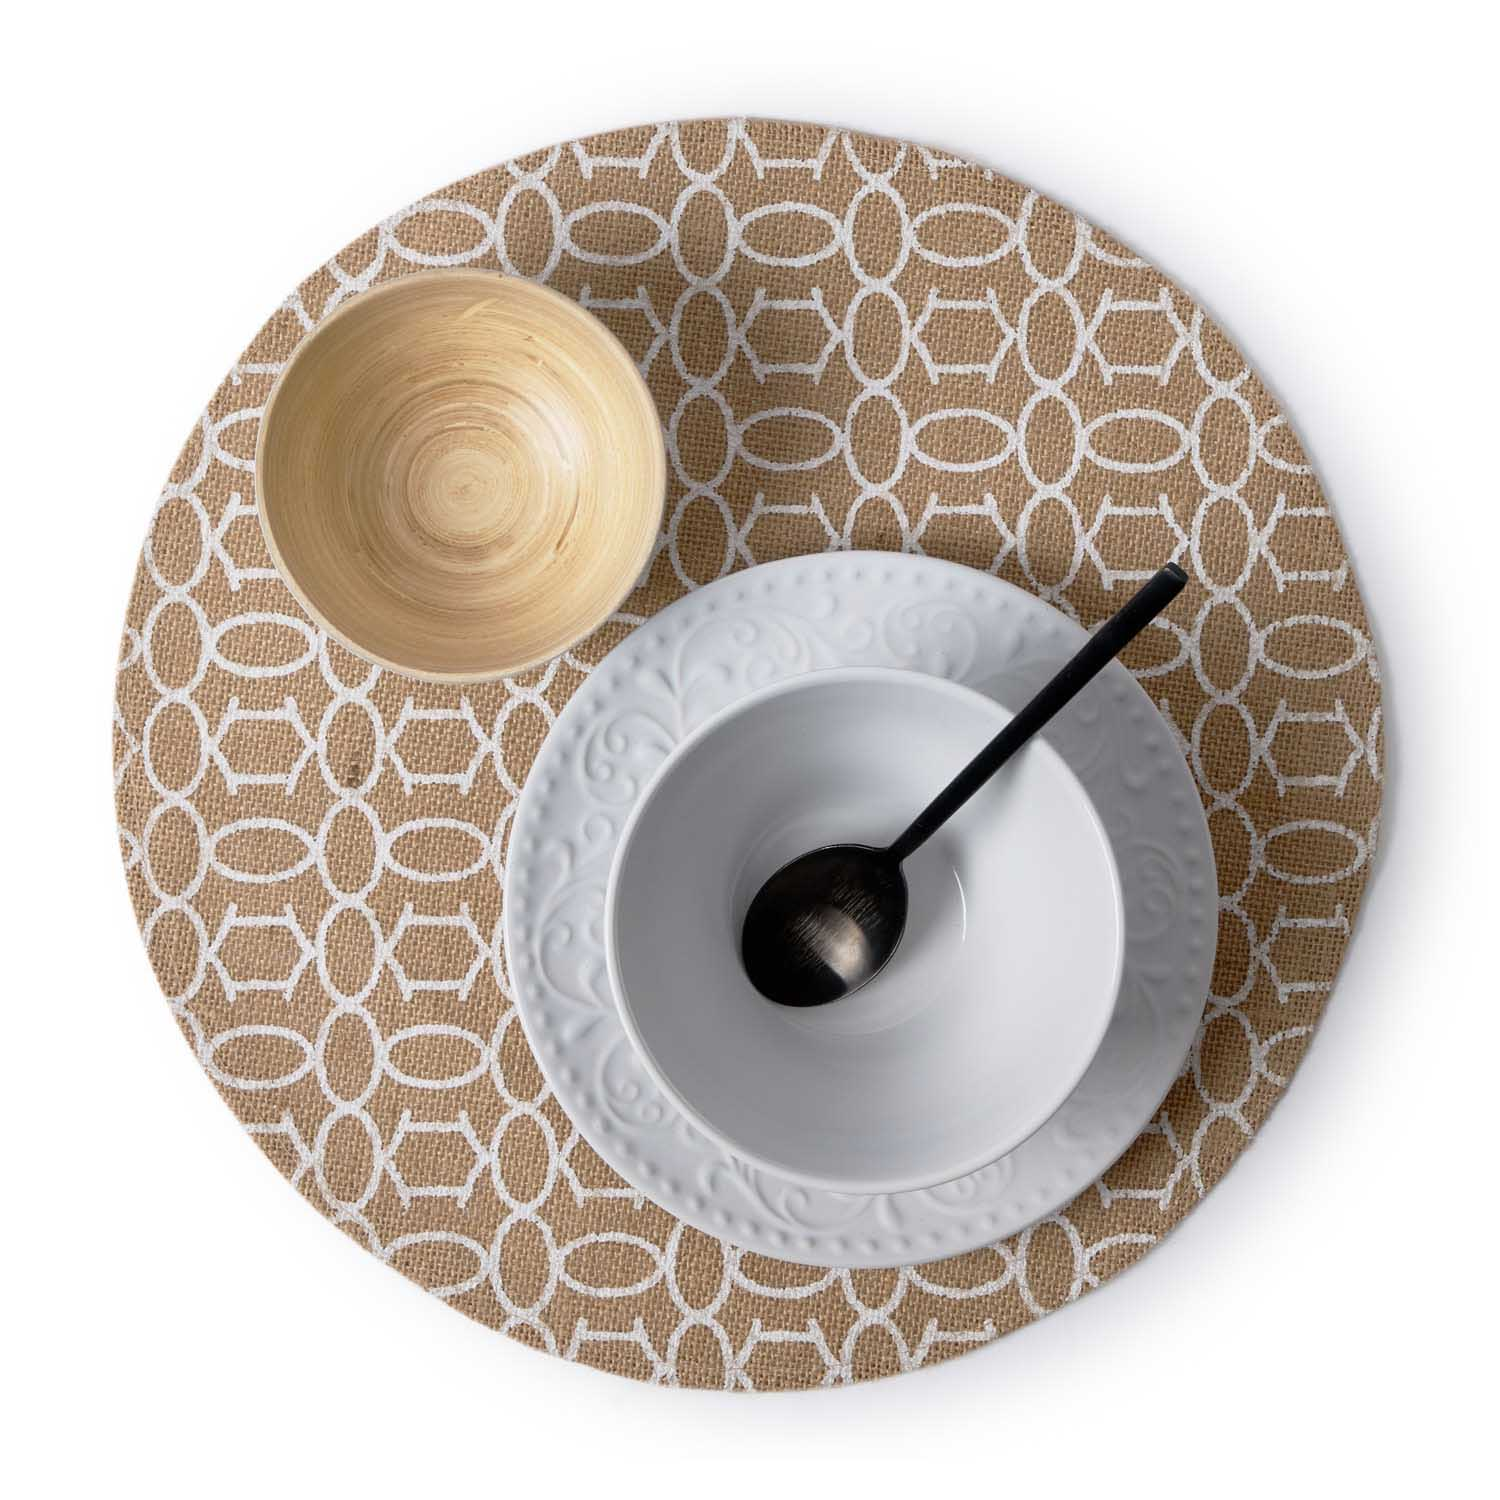 2 Placemats Set Summer, jute, brown and white color, hola38x38 cm